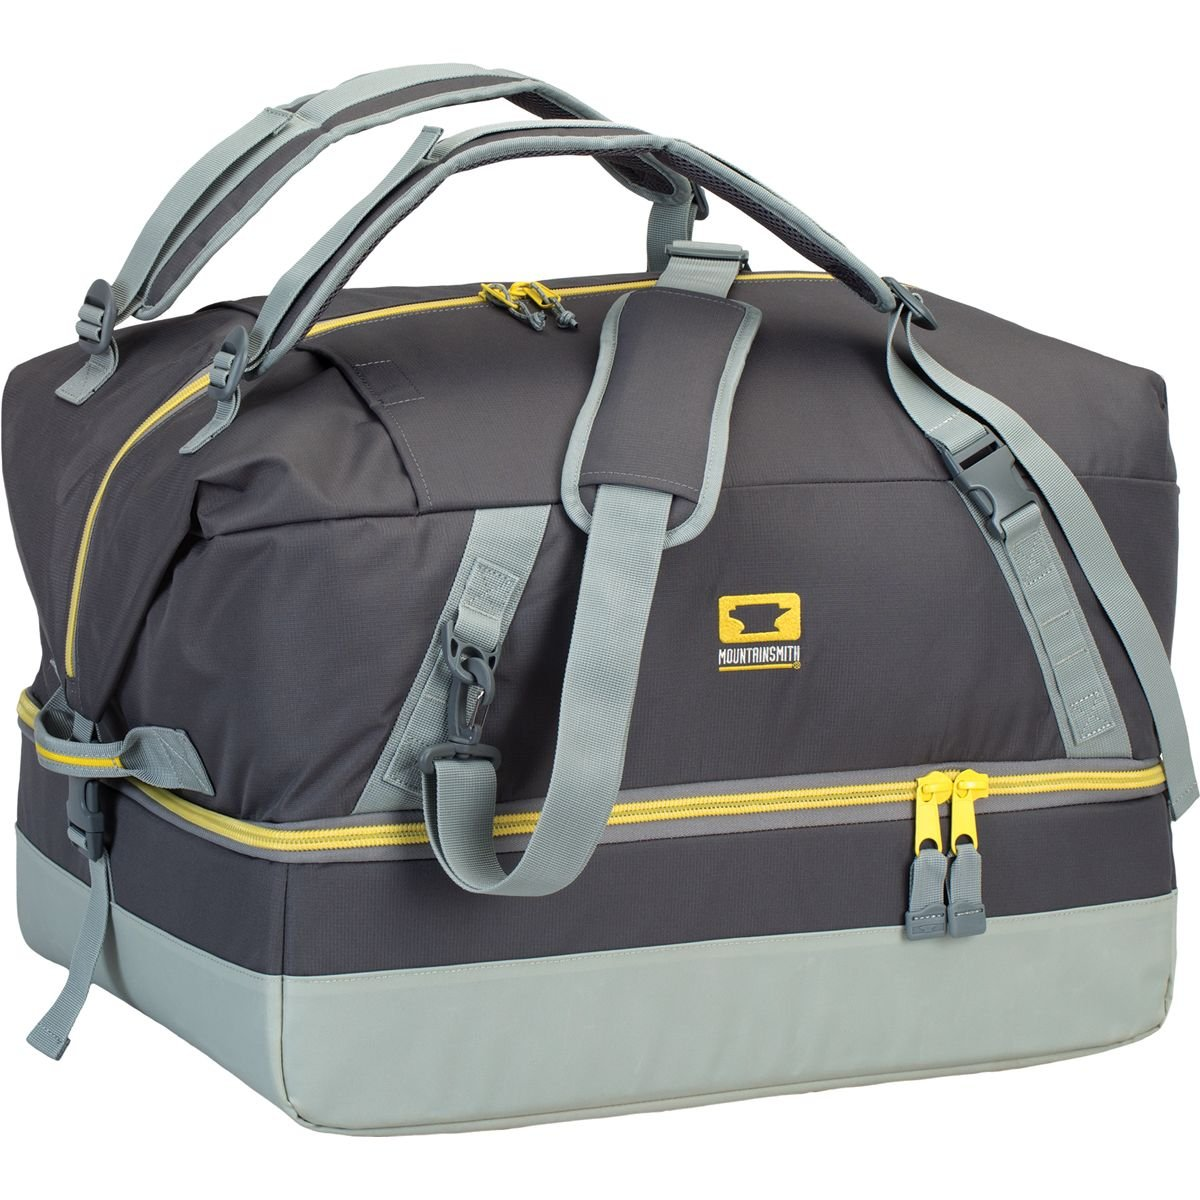 Mountainsmith Dump Trunk Hauler Duffel Bag, Ice Grey, One Size by Mountainsmith